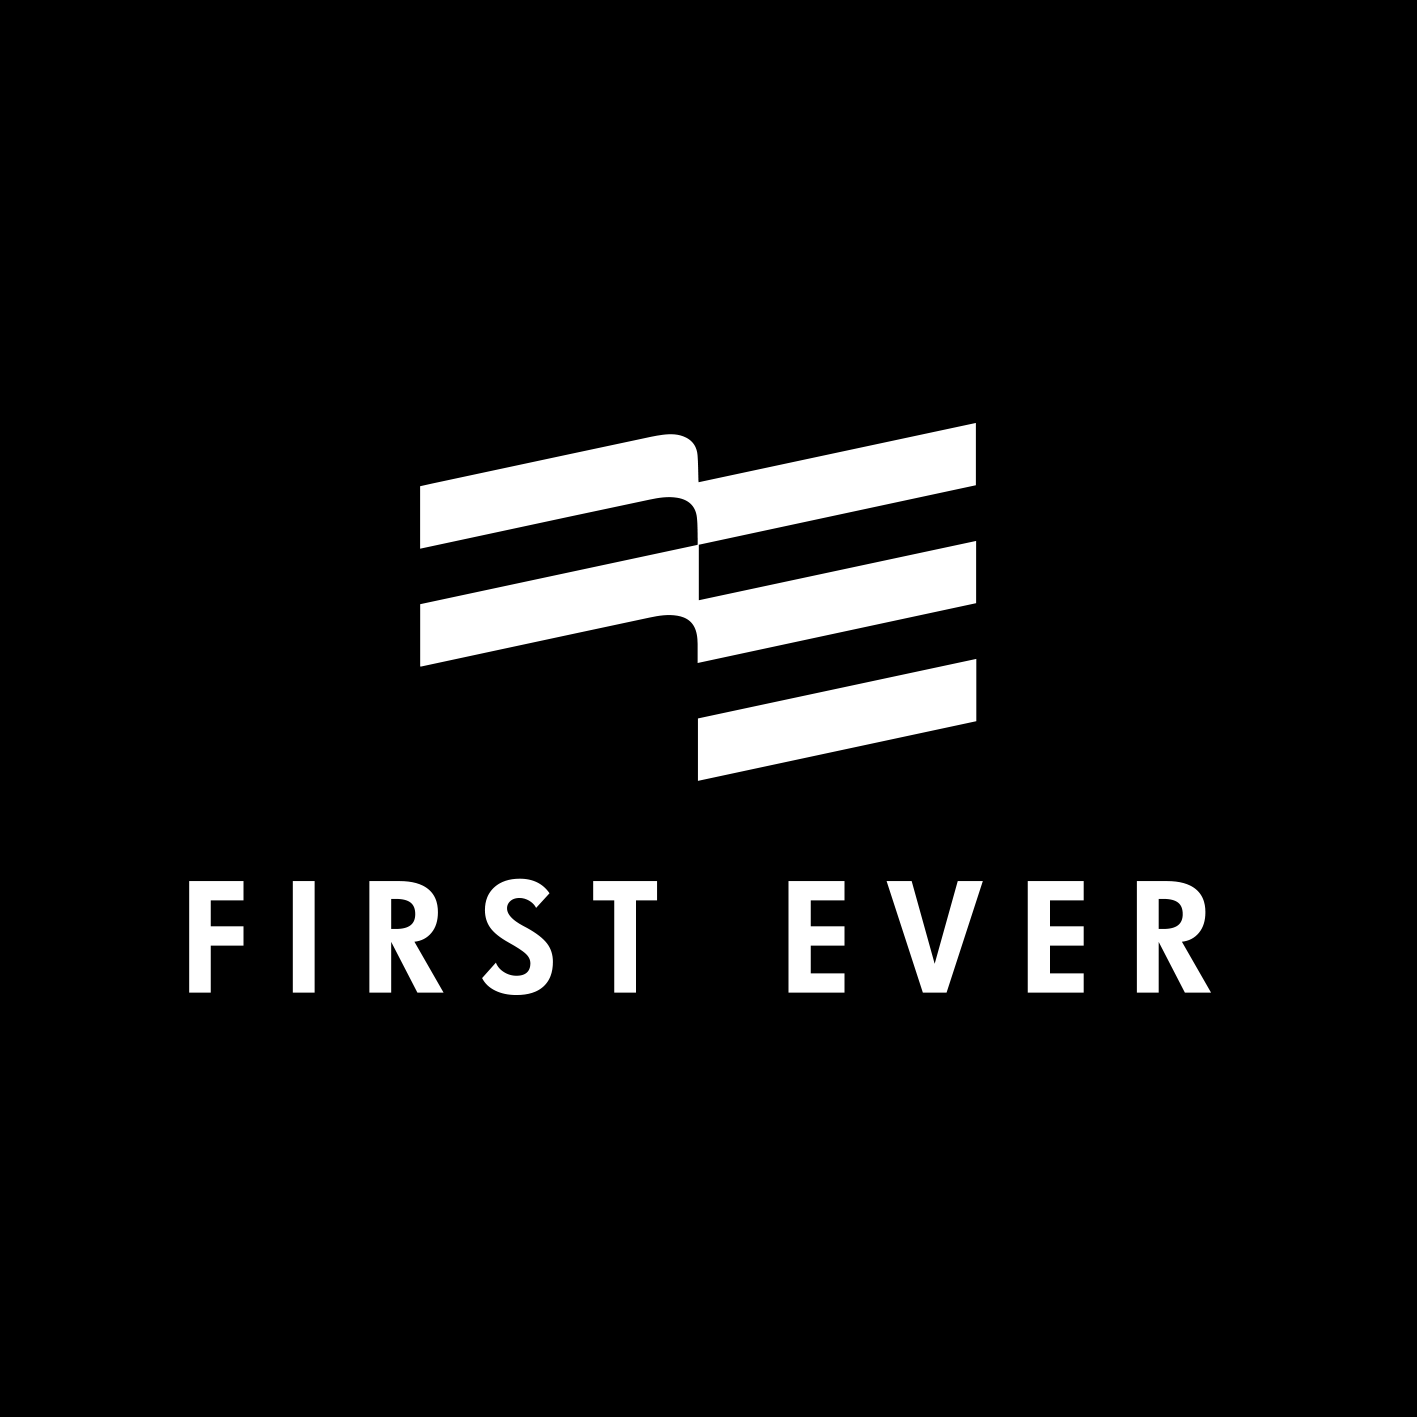 logo first ever